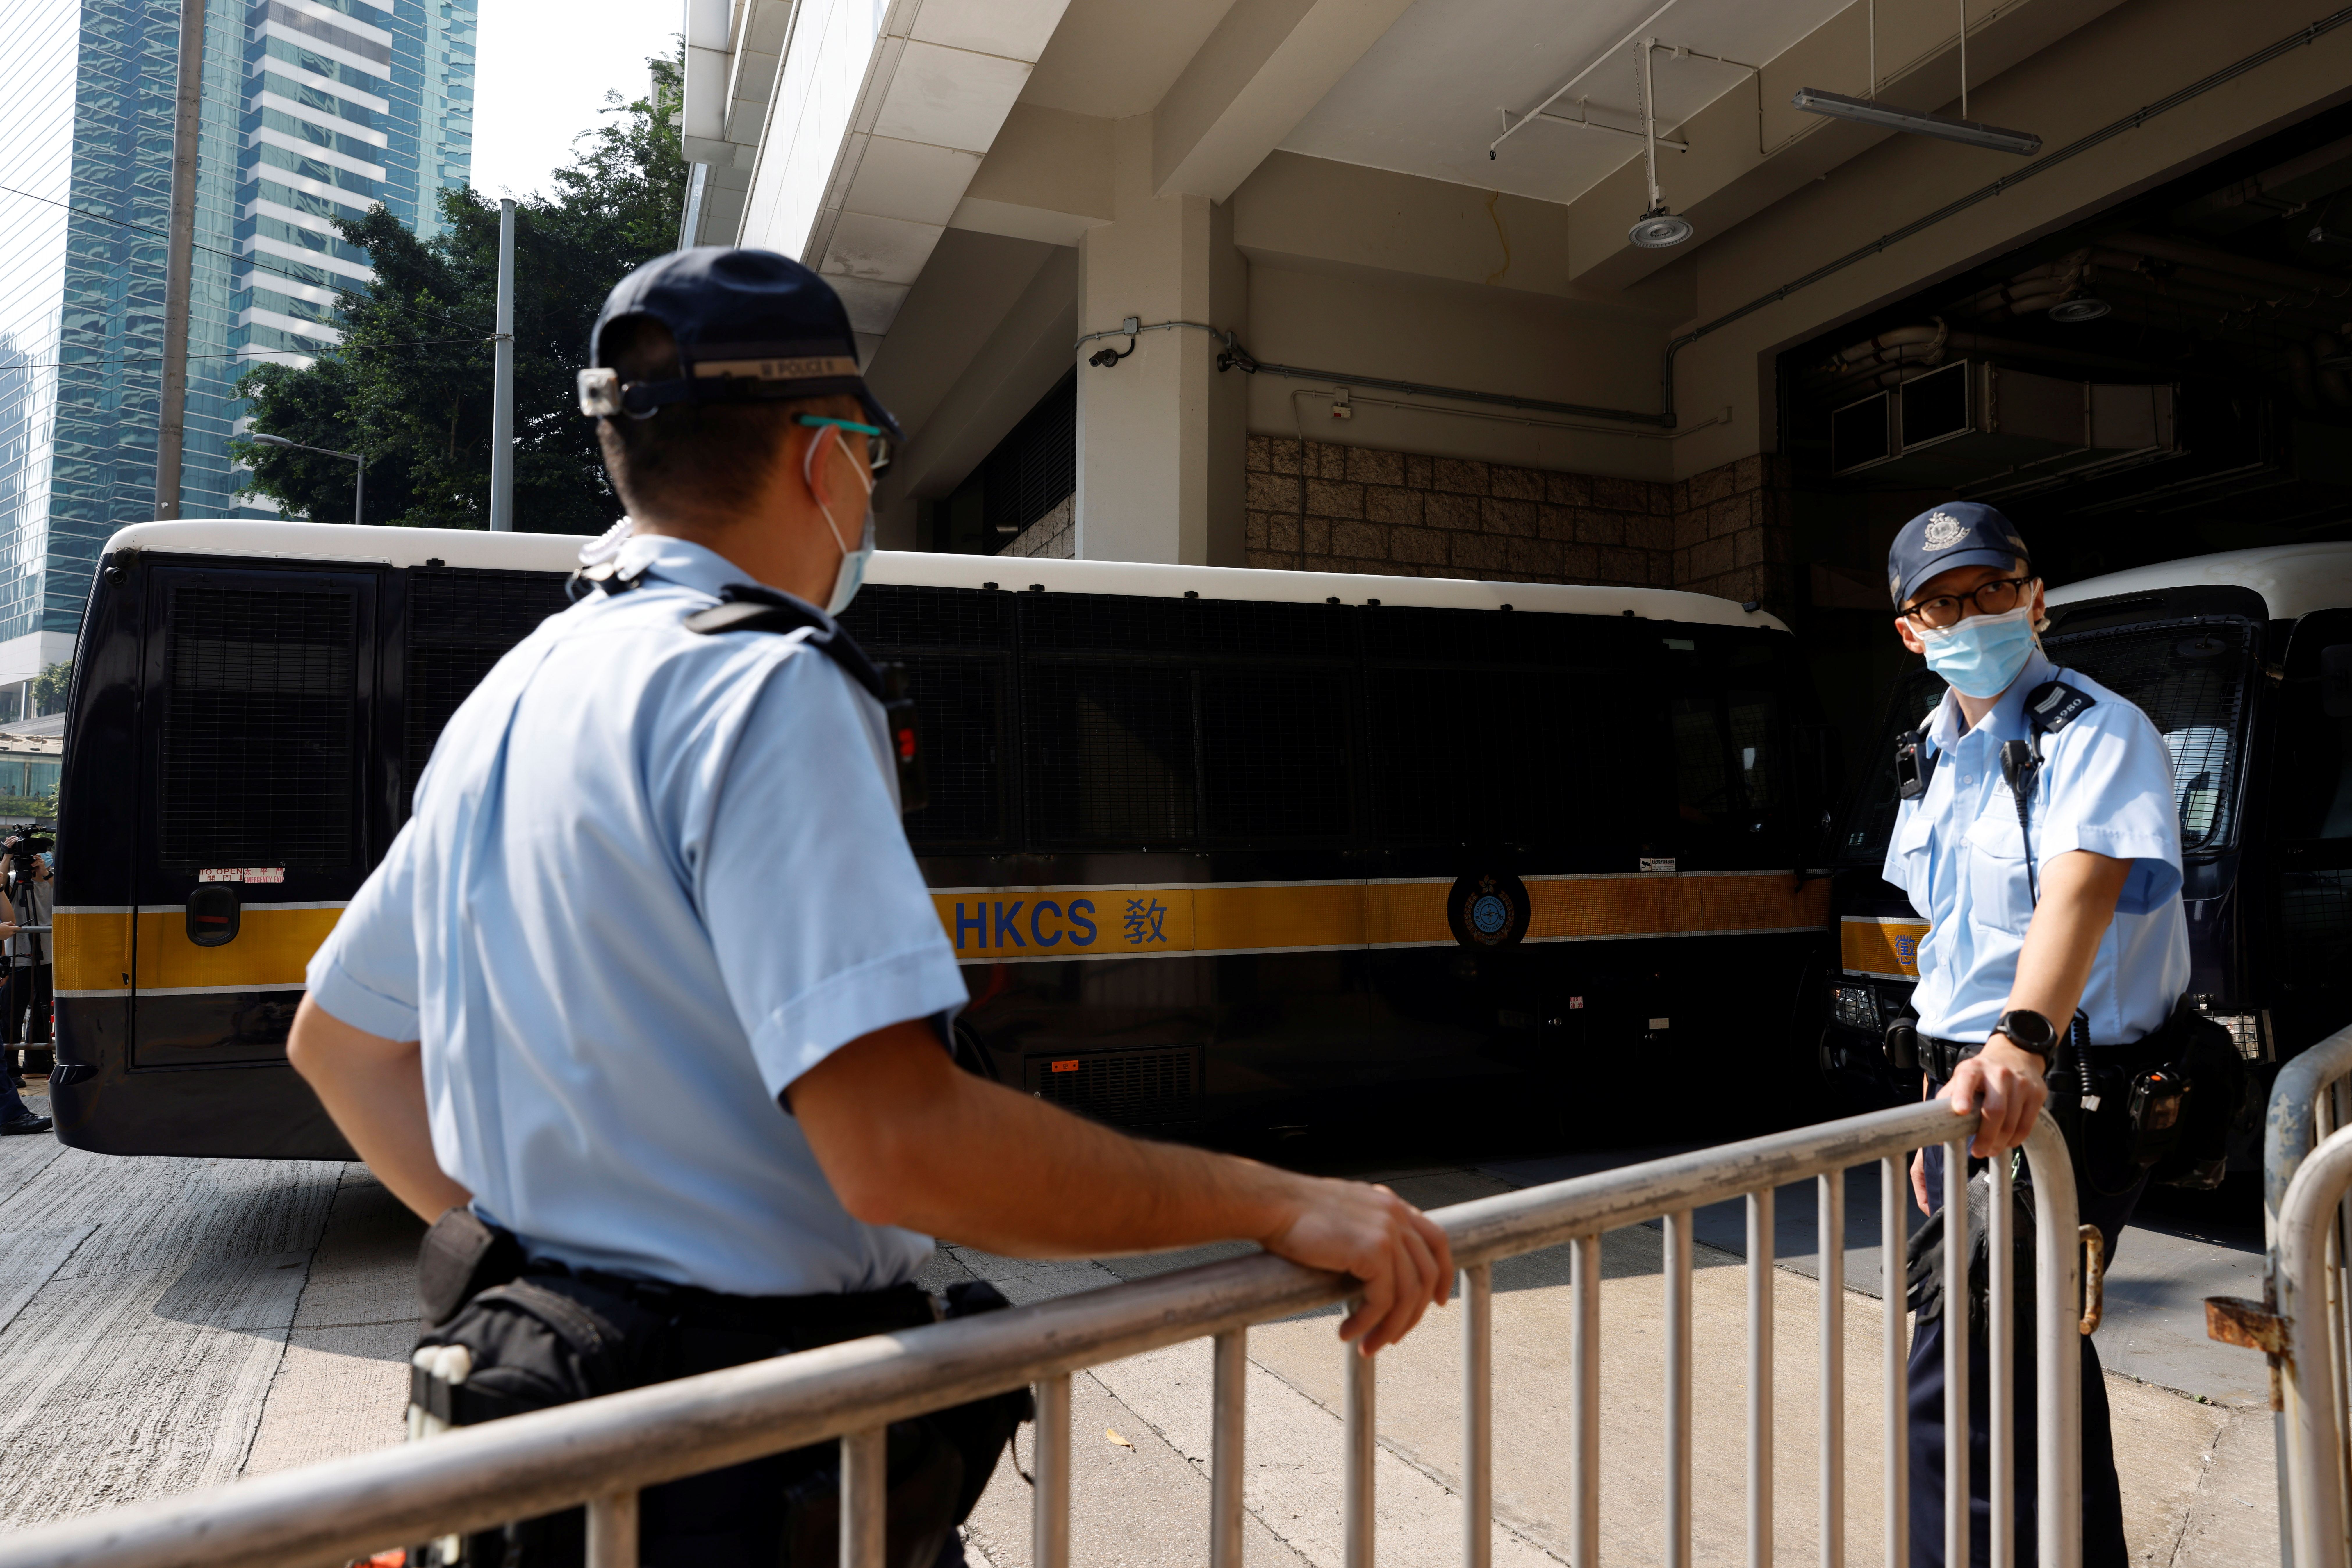 A prison van carrying Tong Ying-kit, the first person charged under the new national security law, arrives at High Court for a hearing, in Hong Kong, China, July 27, 2021. REUTERS/Tyrone Siu